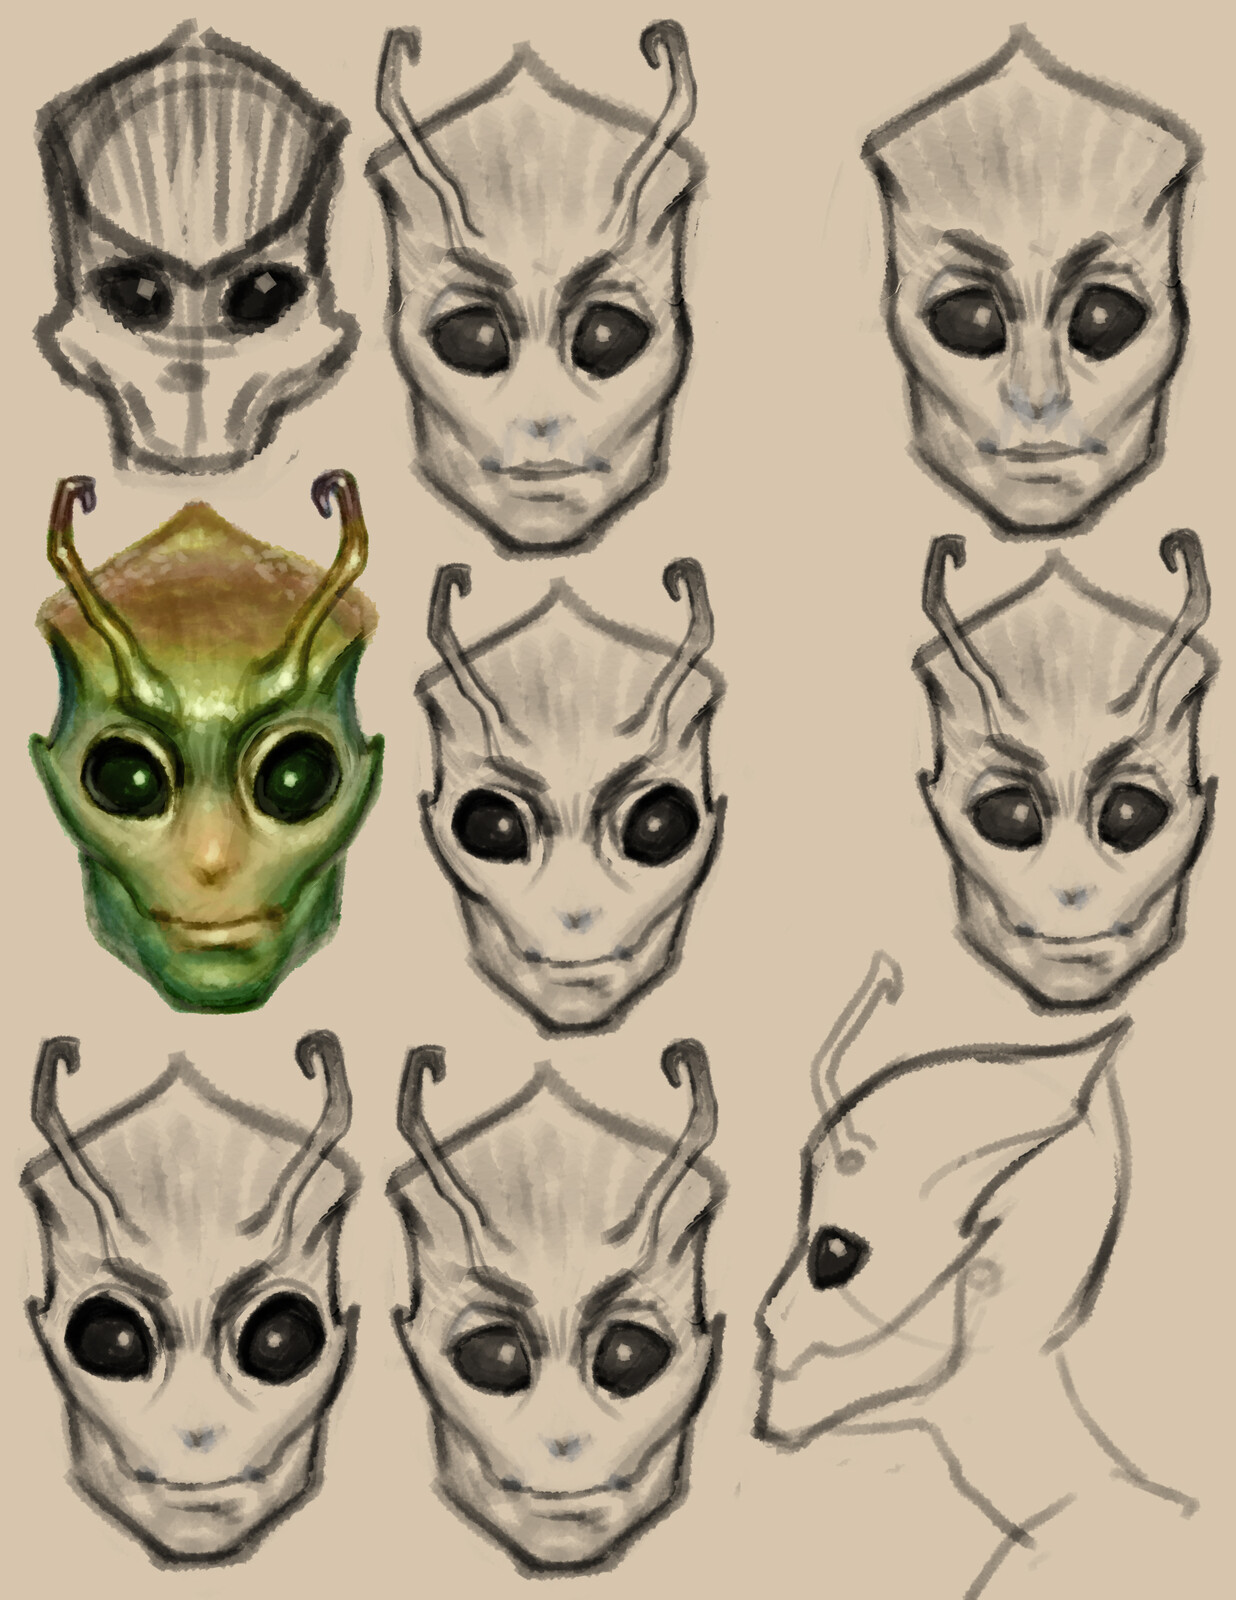 final head sketches, focusing on bringing out skull structure in beetle like ways